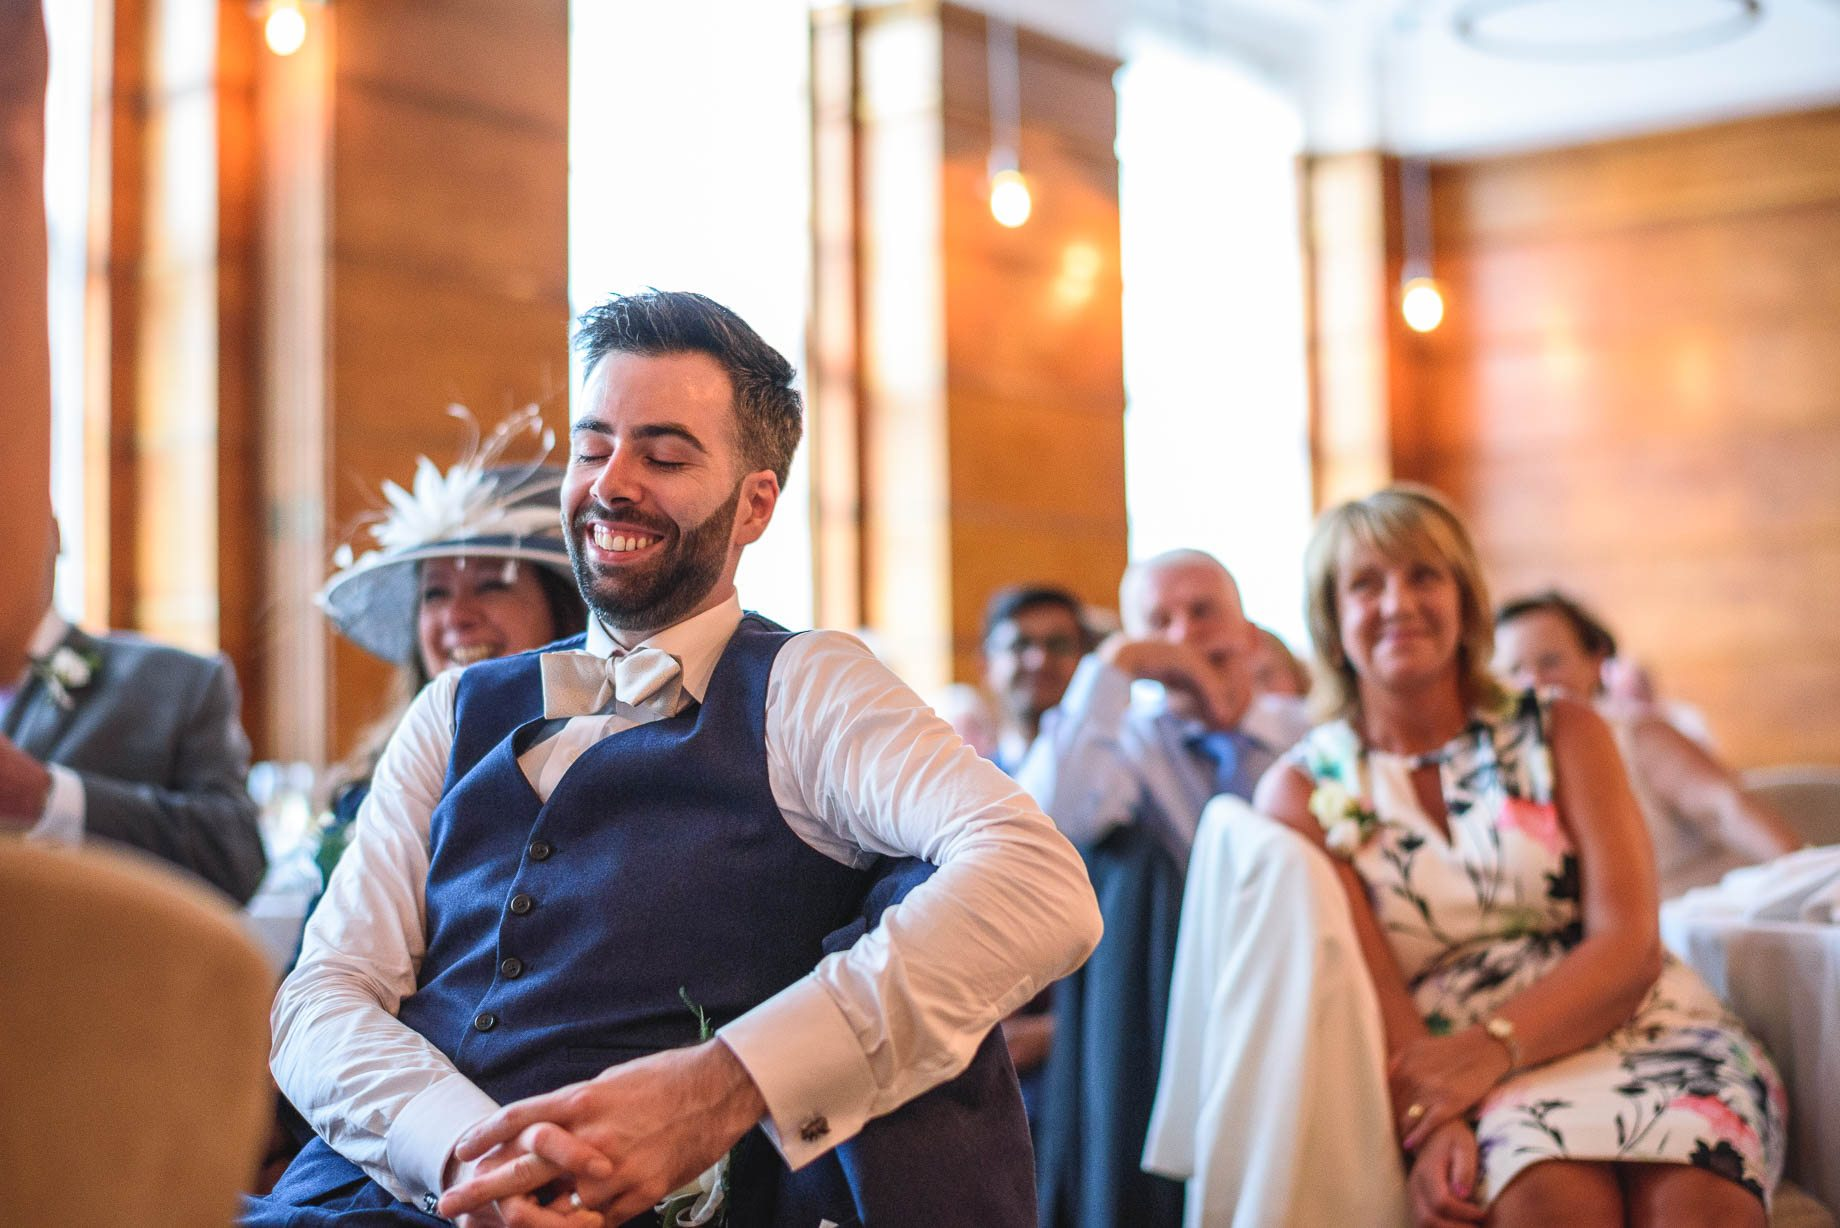 London Wedding Photography - Guy Collier Photography - LJ + Russell (127 of 155)